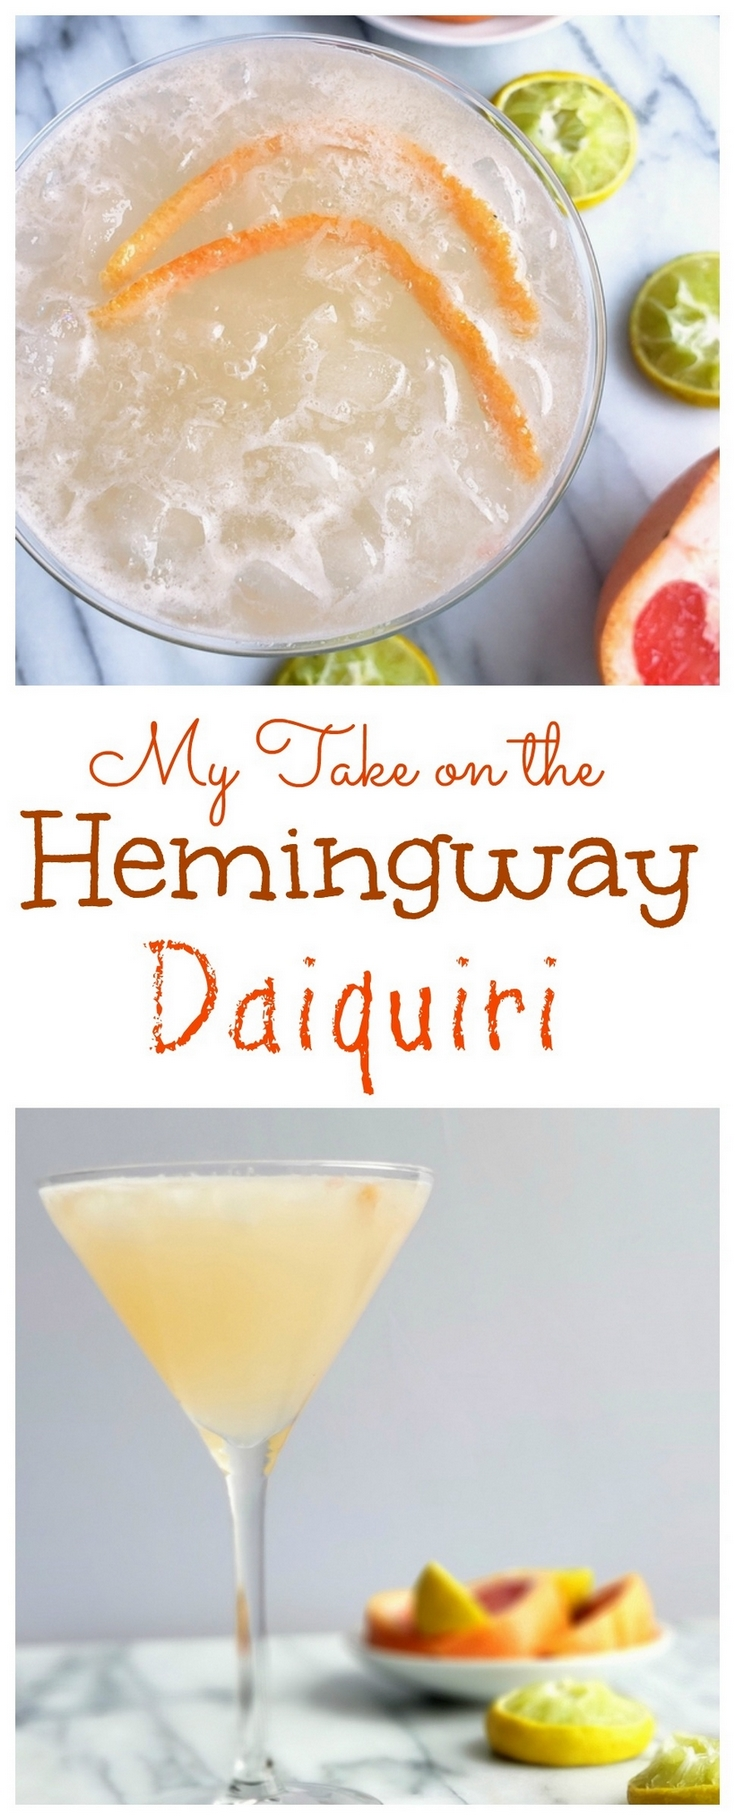 Ernest Hemingway became obsessed with the daiquiri after spending time in Cuba. This is my take on the special recipe created for him in his honor.  #cocktail #daiquiri via @cmpollak1